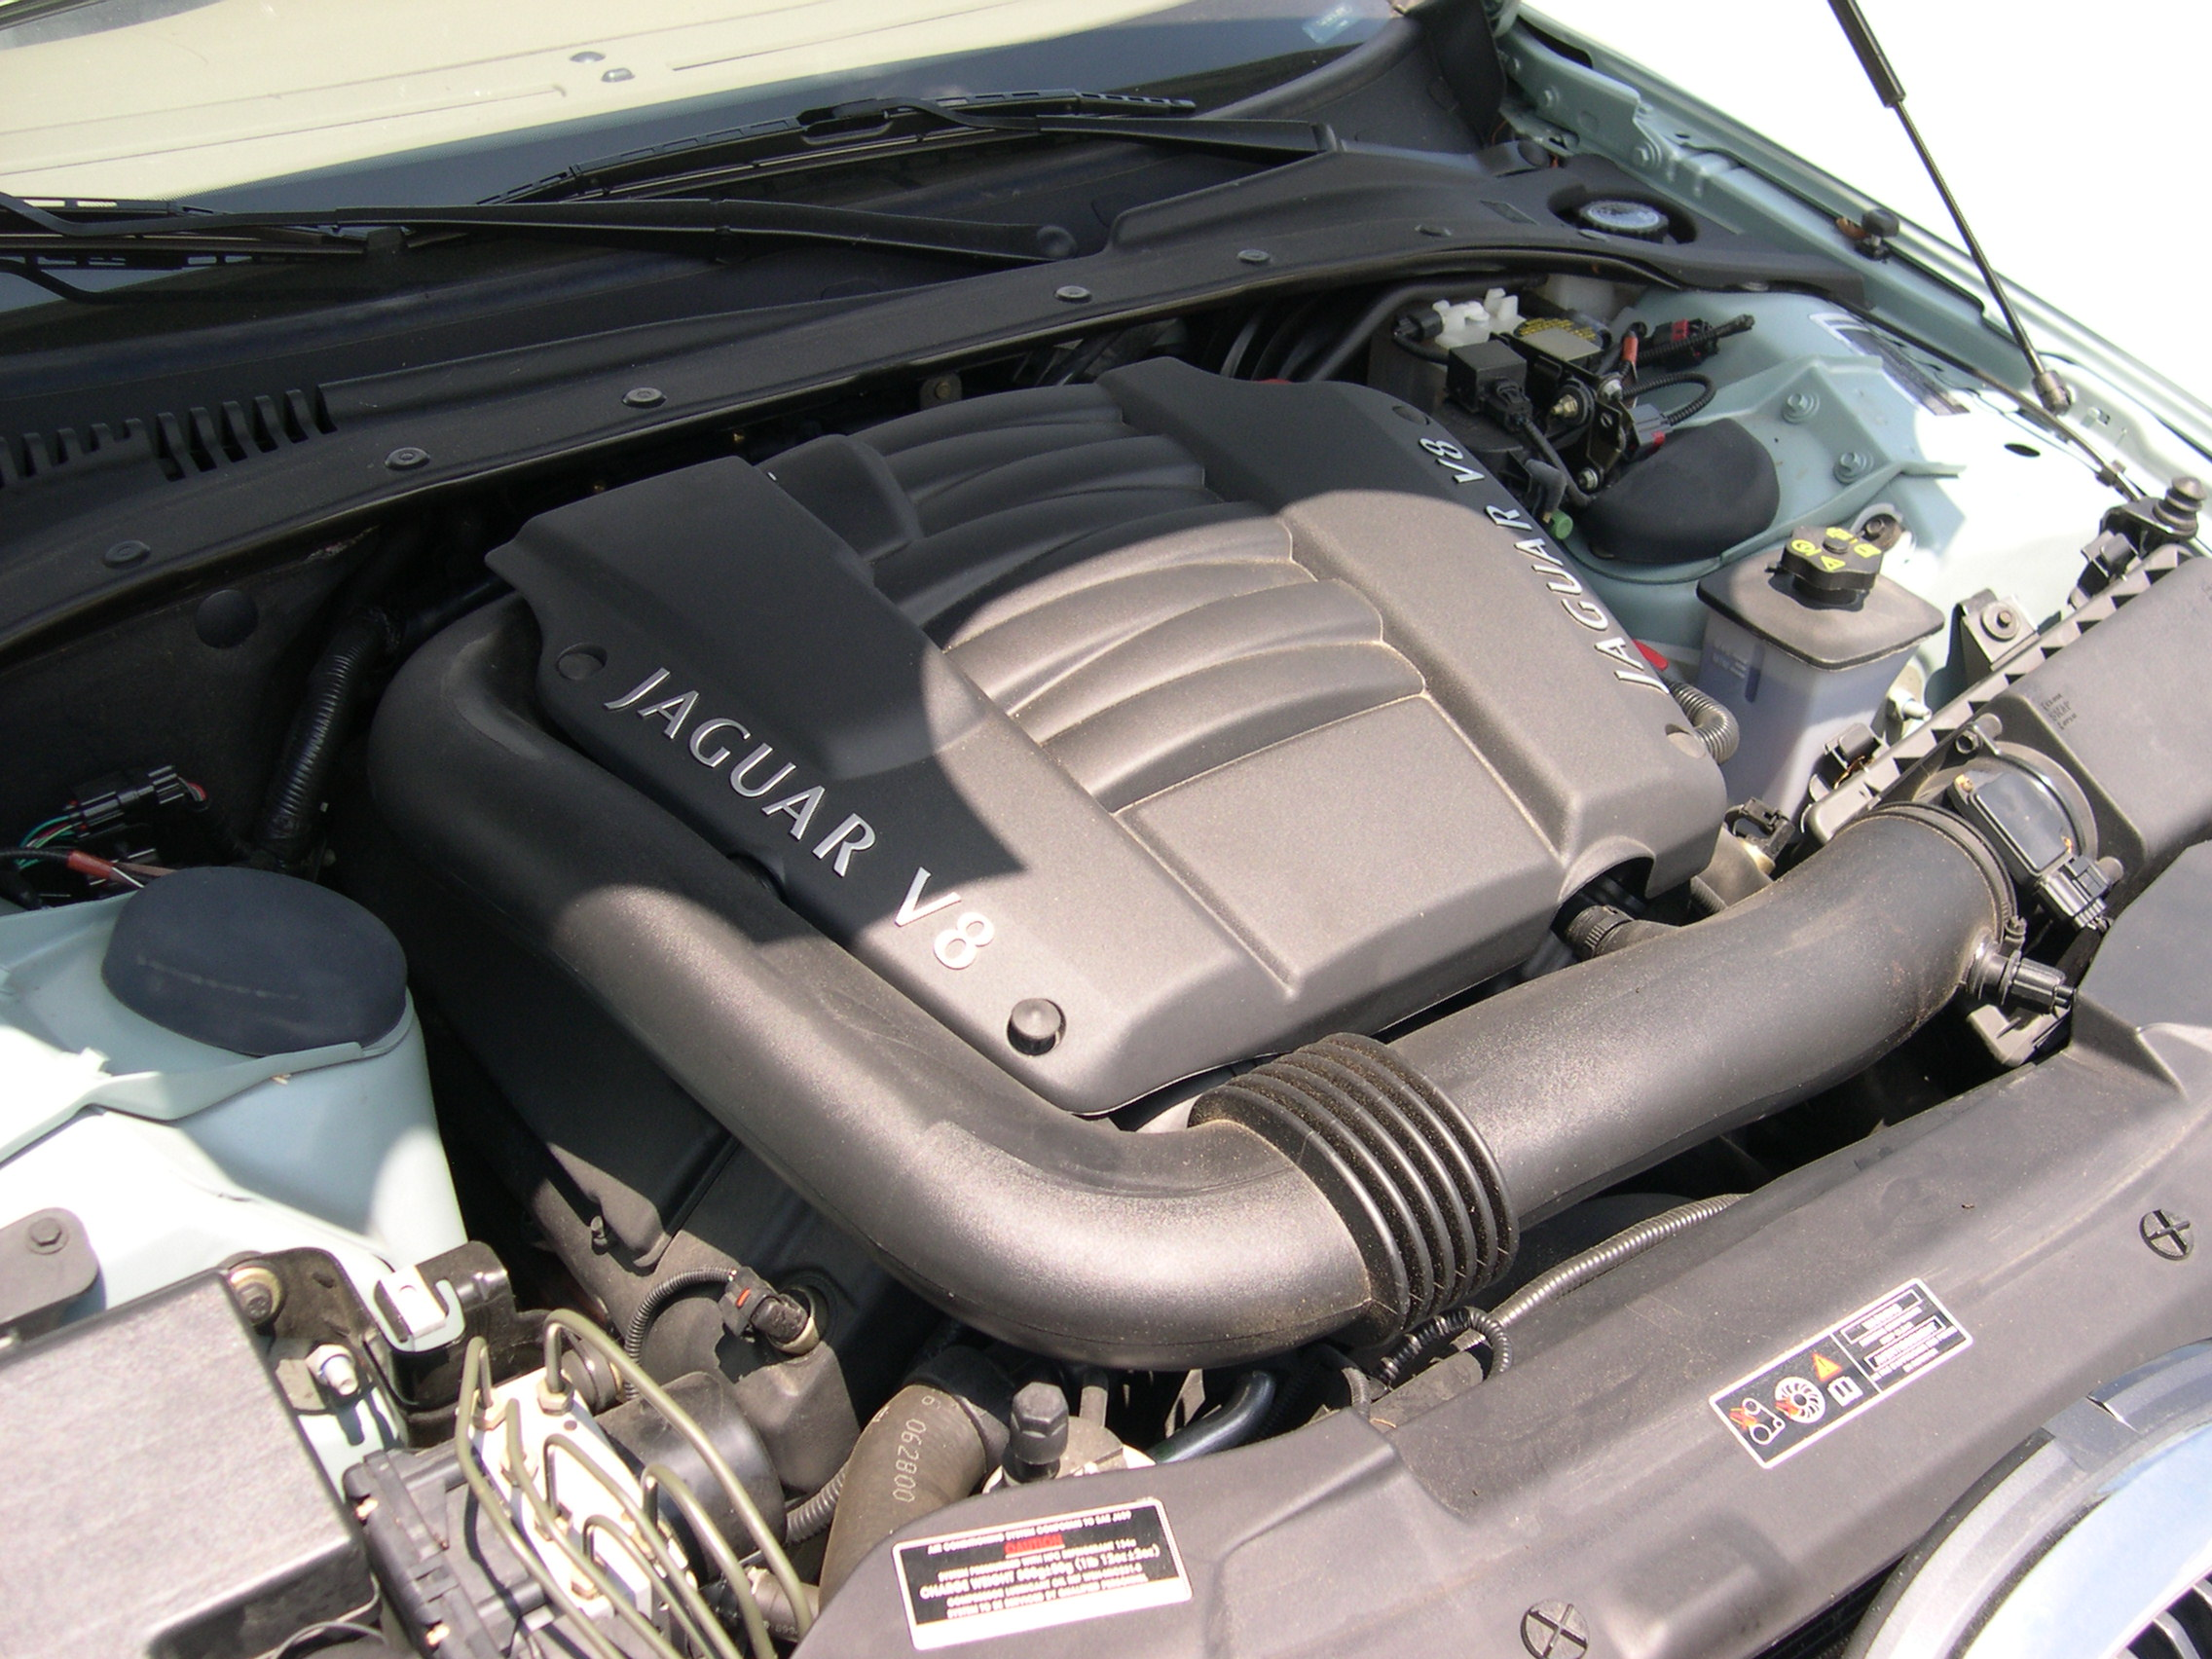 File:2001 Jaguar S-Type AJ-V8 engine.JPG